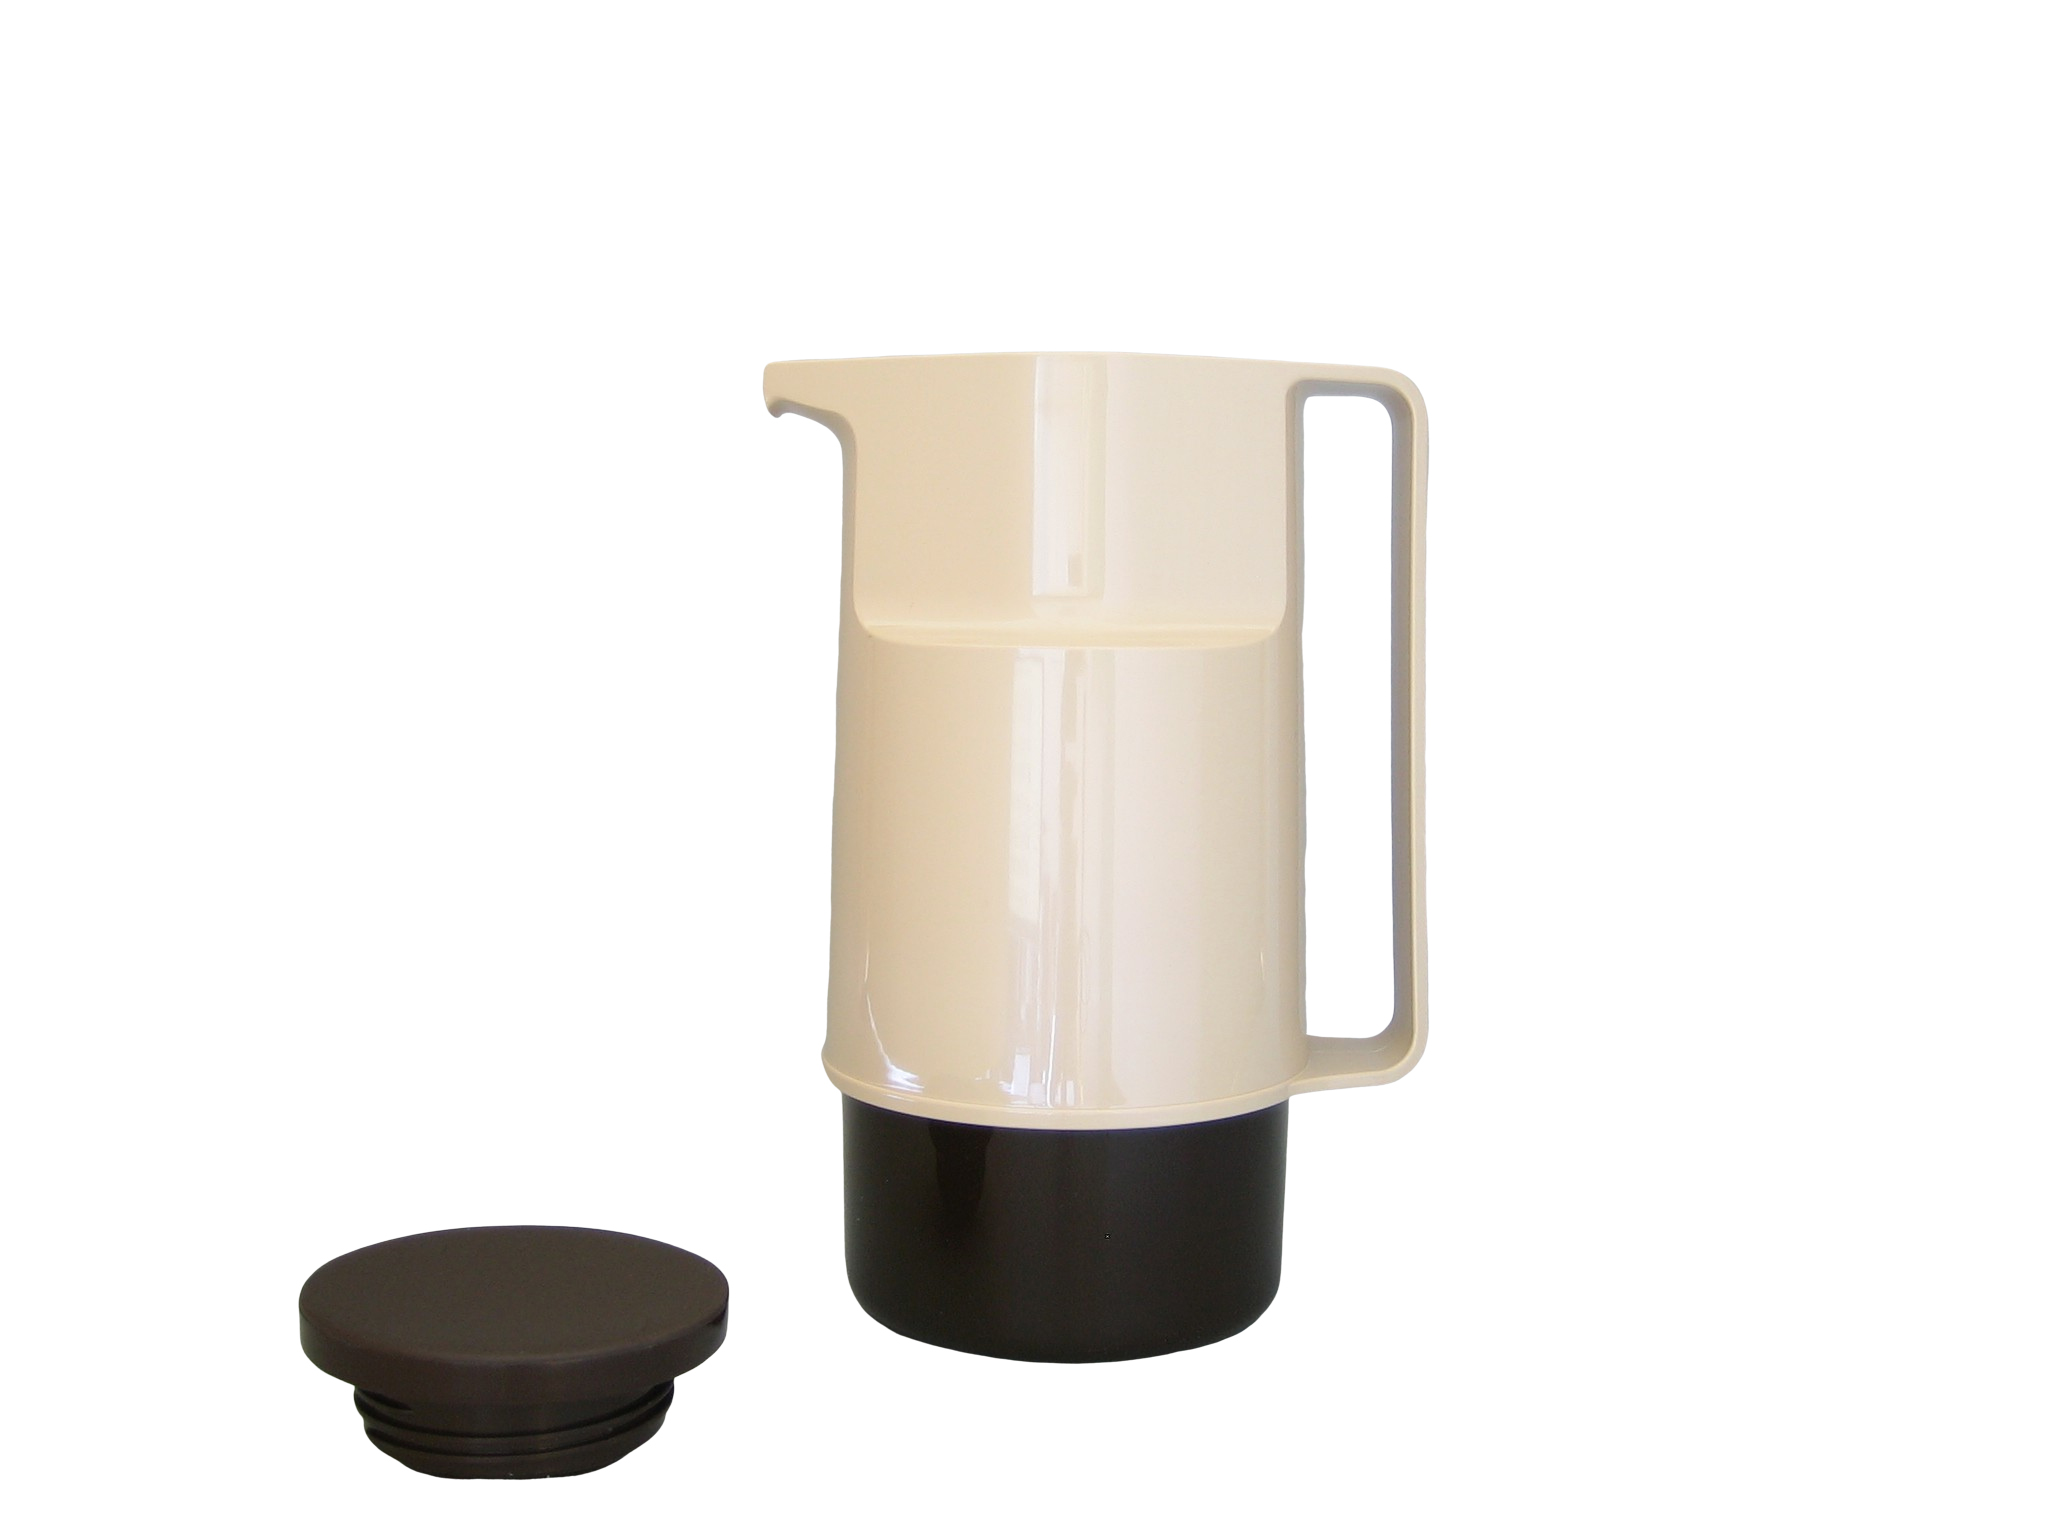 210-1030 - Pichet isotherme ABS beige/brun 1.0 L - Isobel